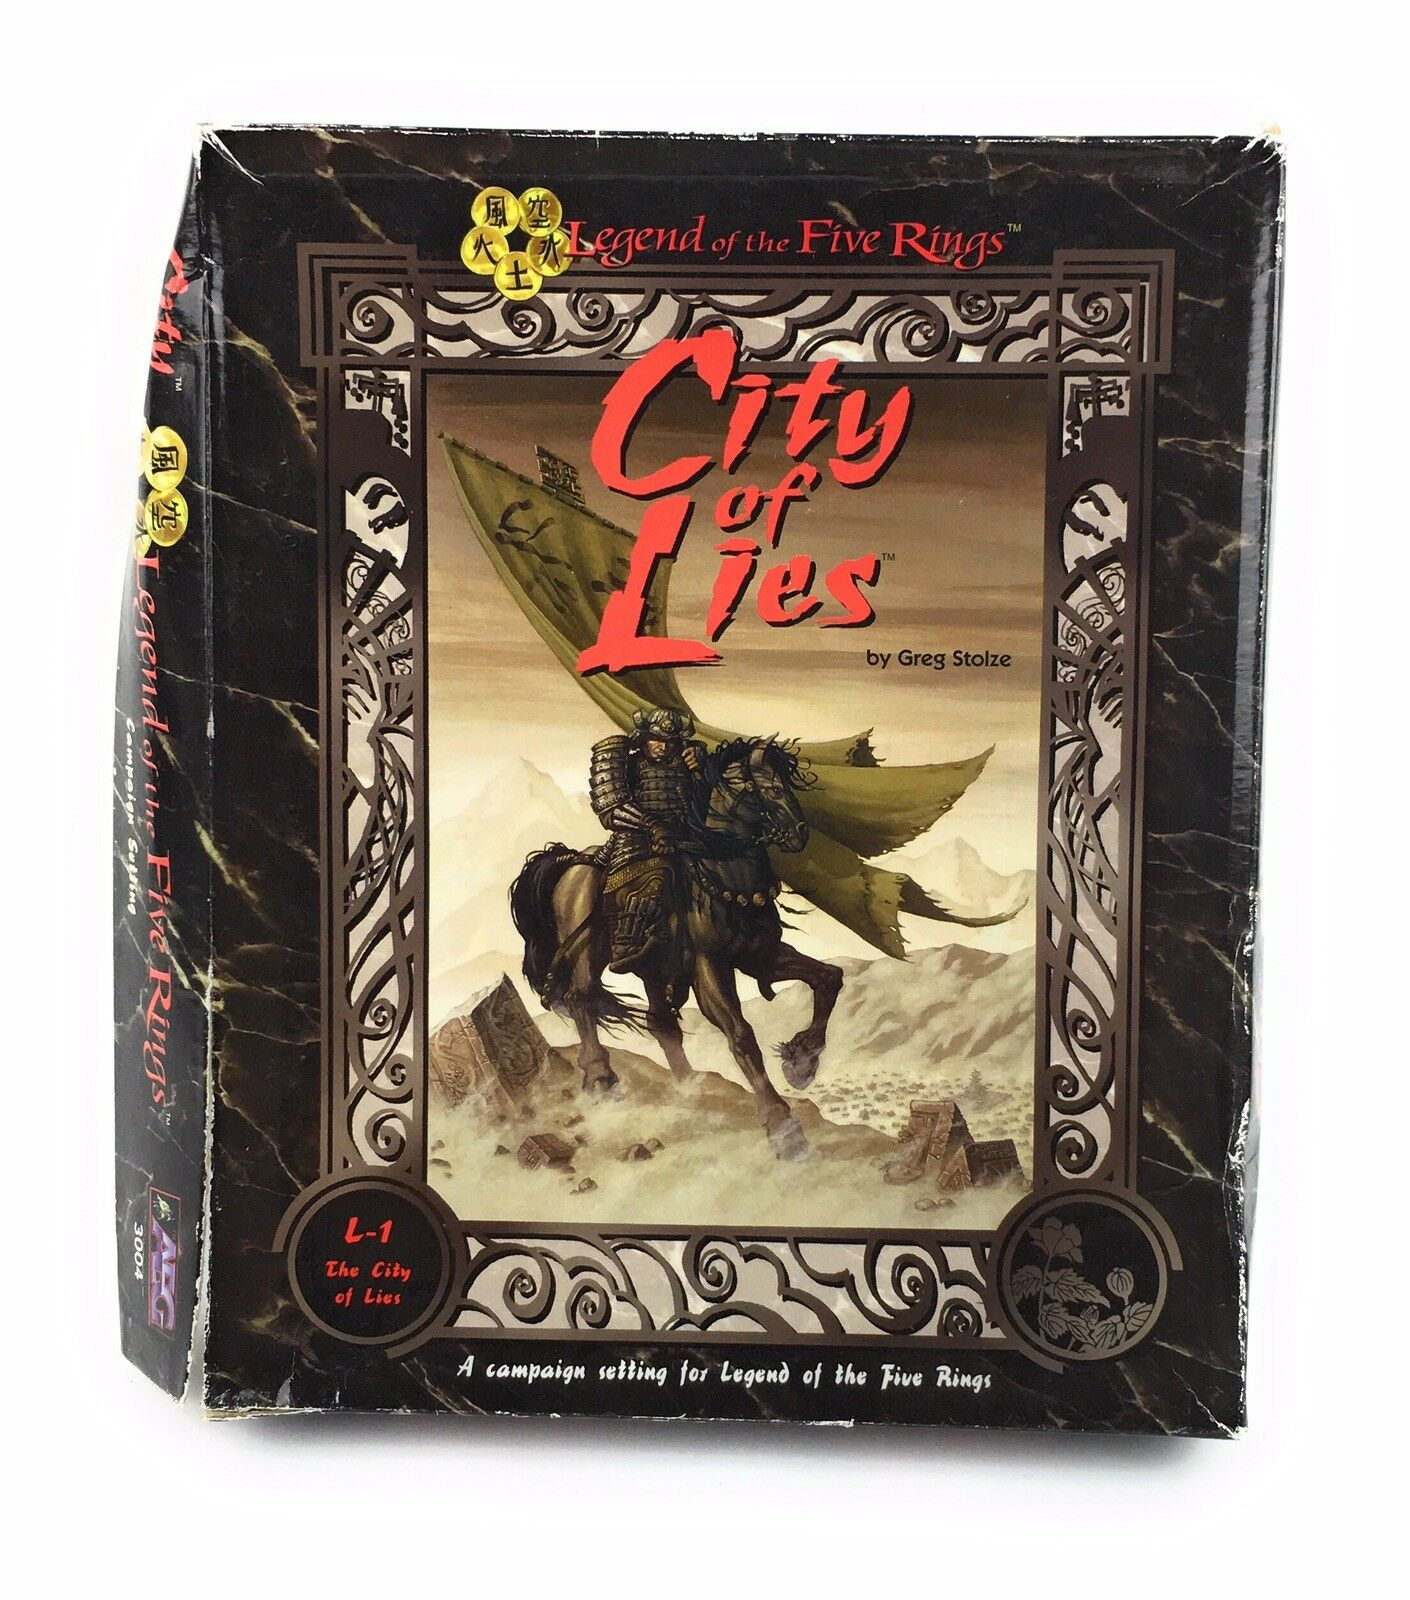 Legend of the Five Rings City of Lies Box 3004 AEG 1st Edition 1999 LR5 L-1